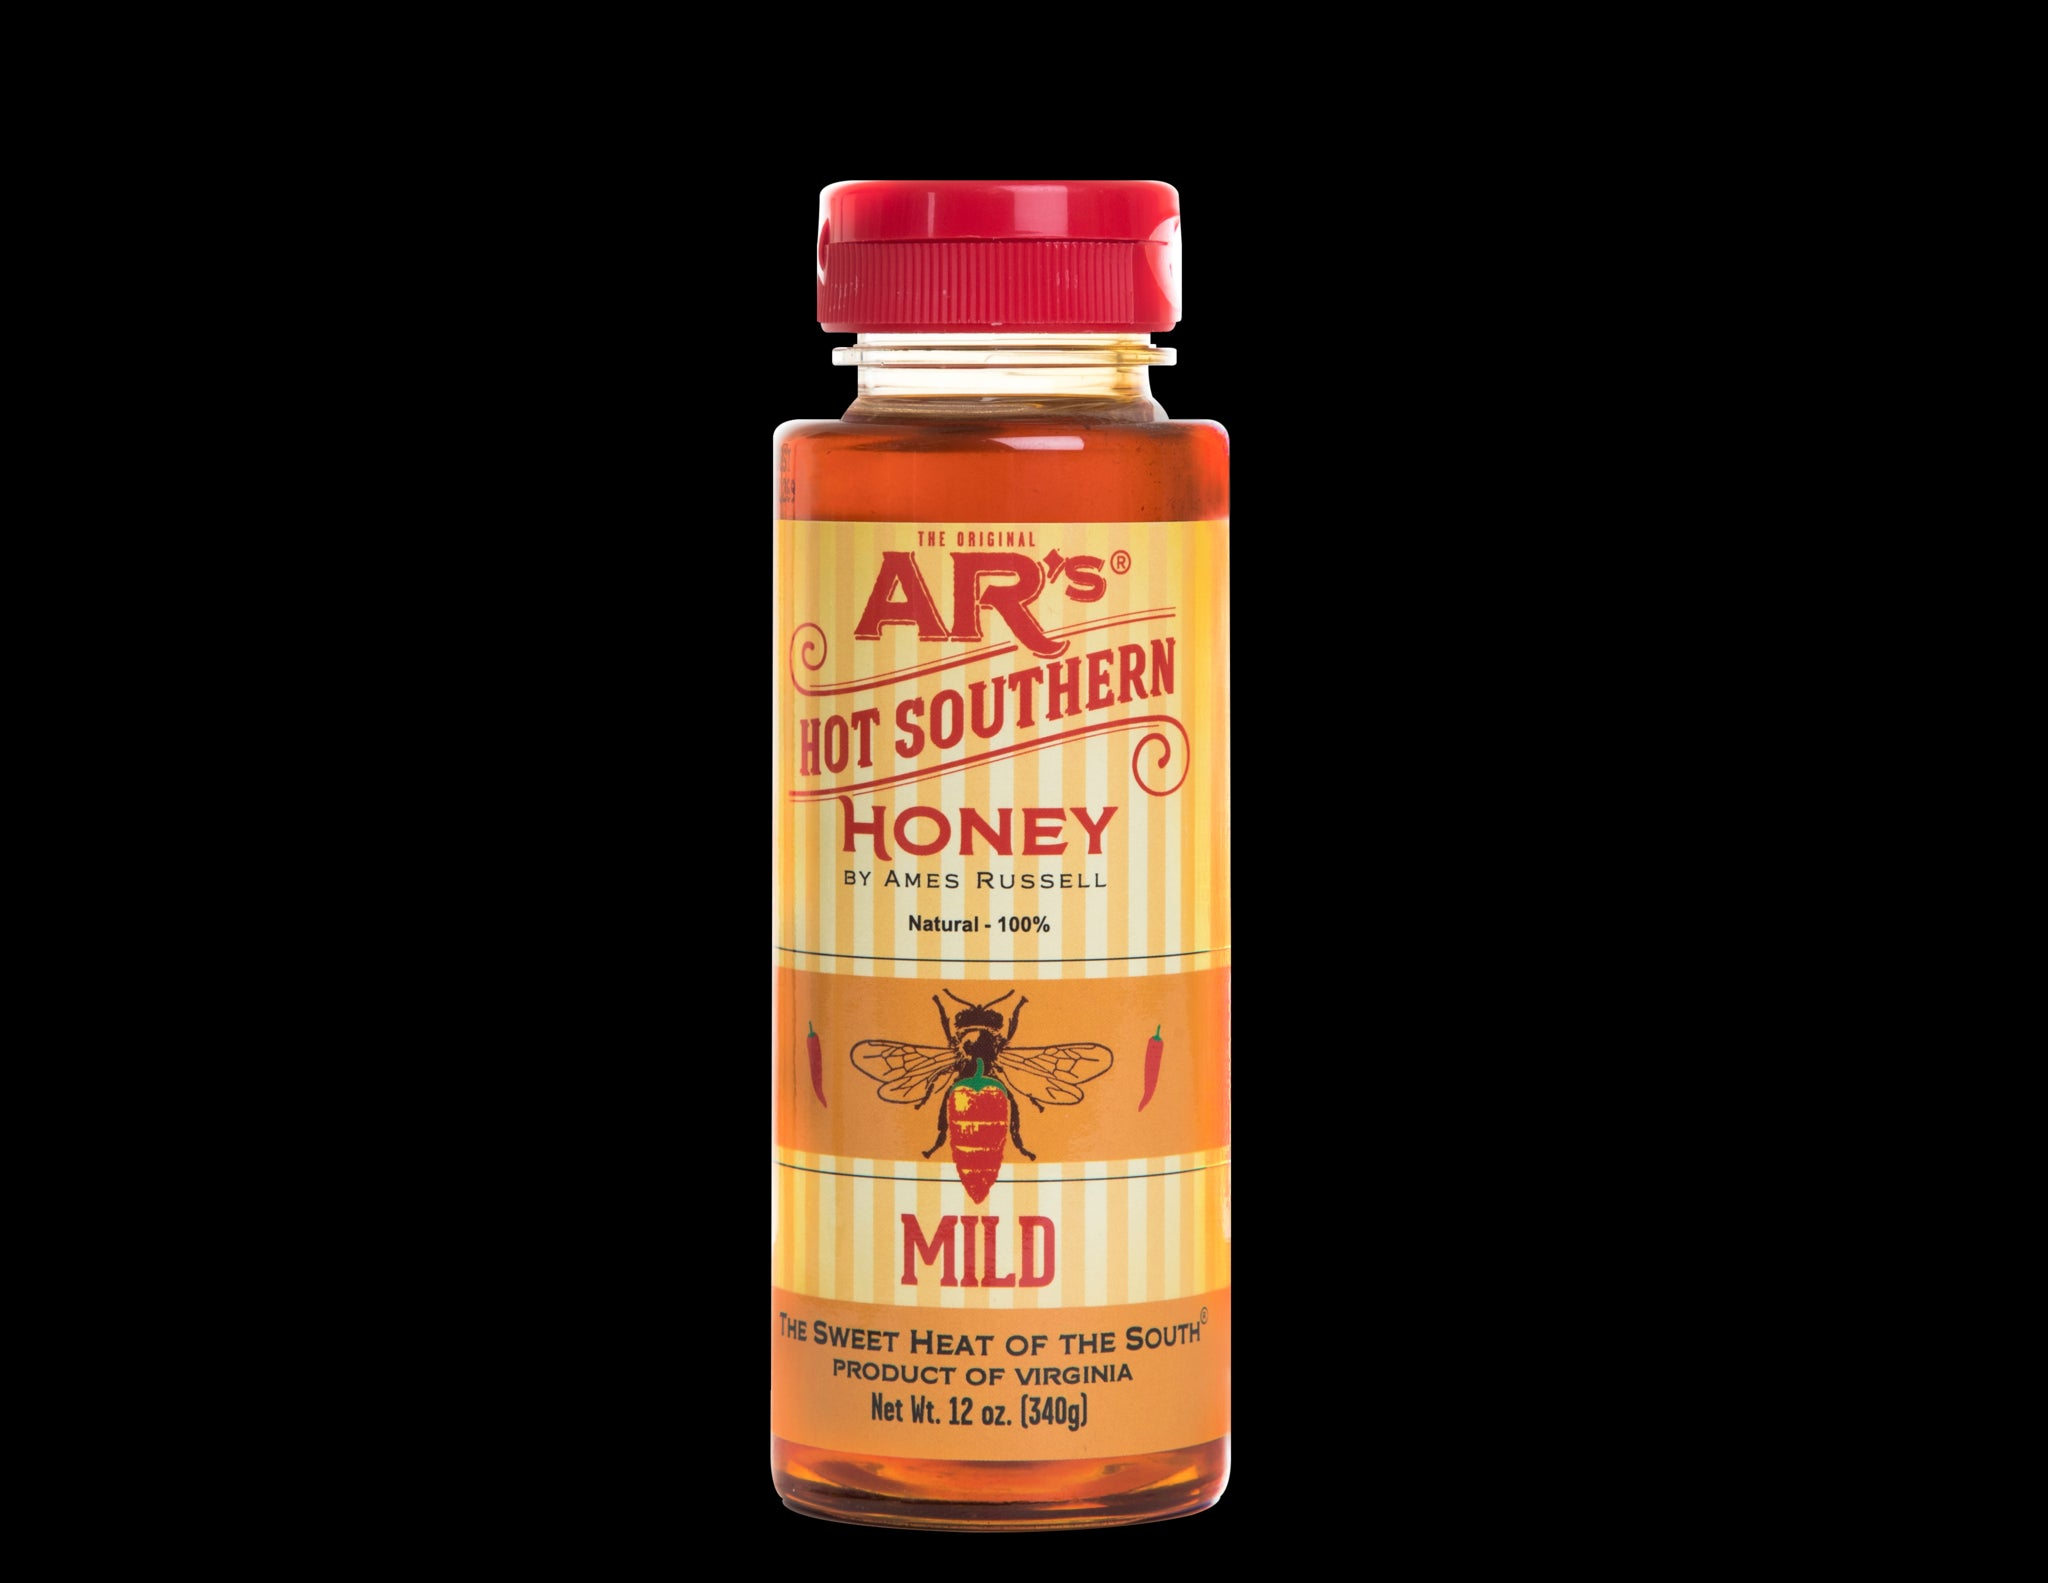 AR'S Hot Southern Honey Mild